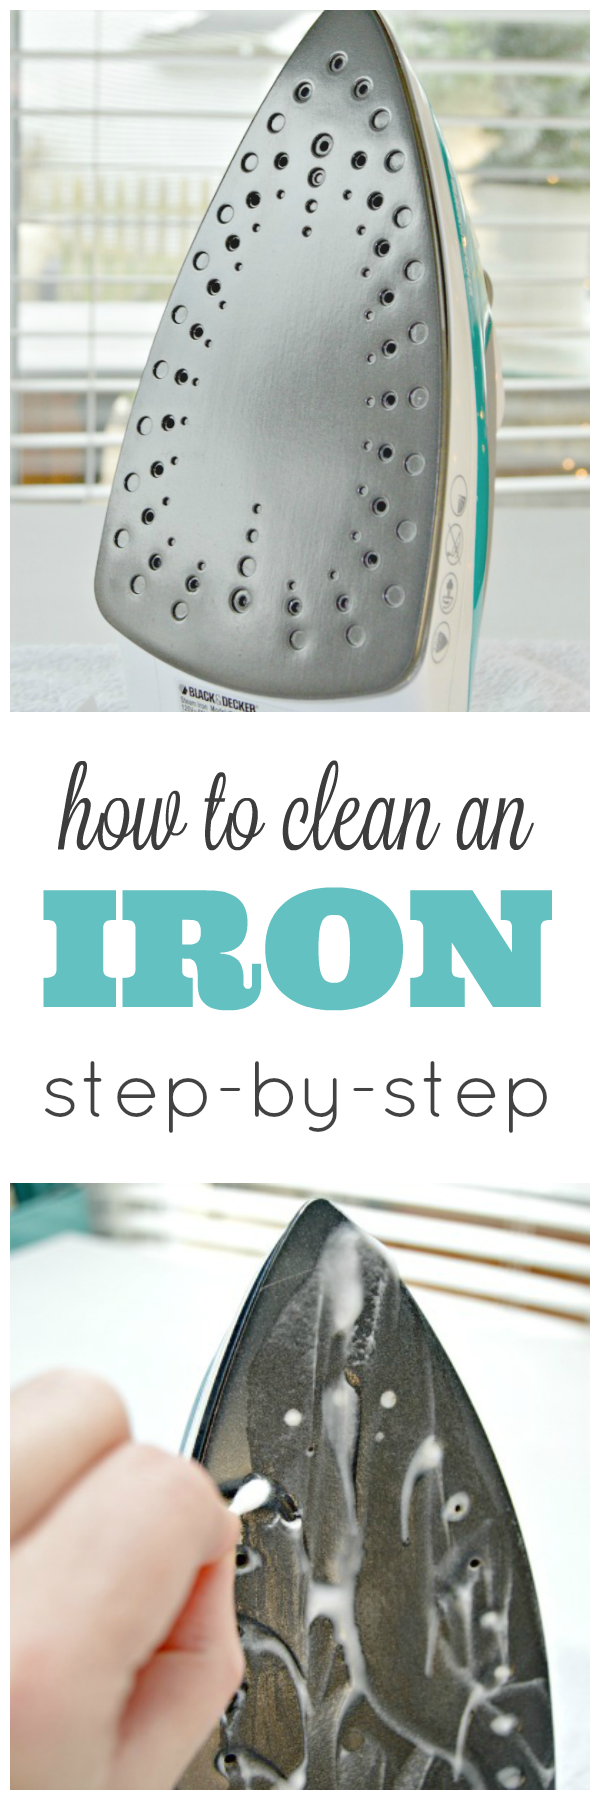 Step by step instructions on How To Clean An Iron - Remove gunk, buildup and even melted plastic!